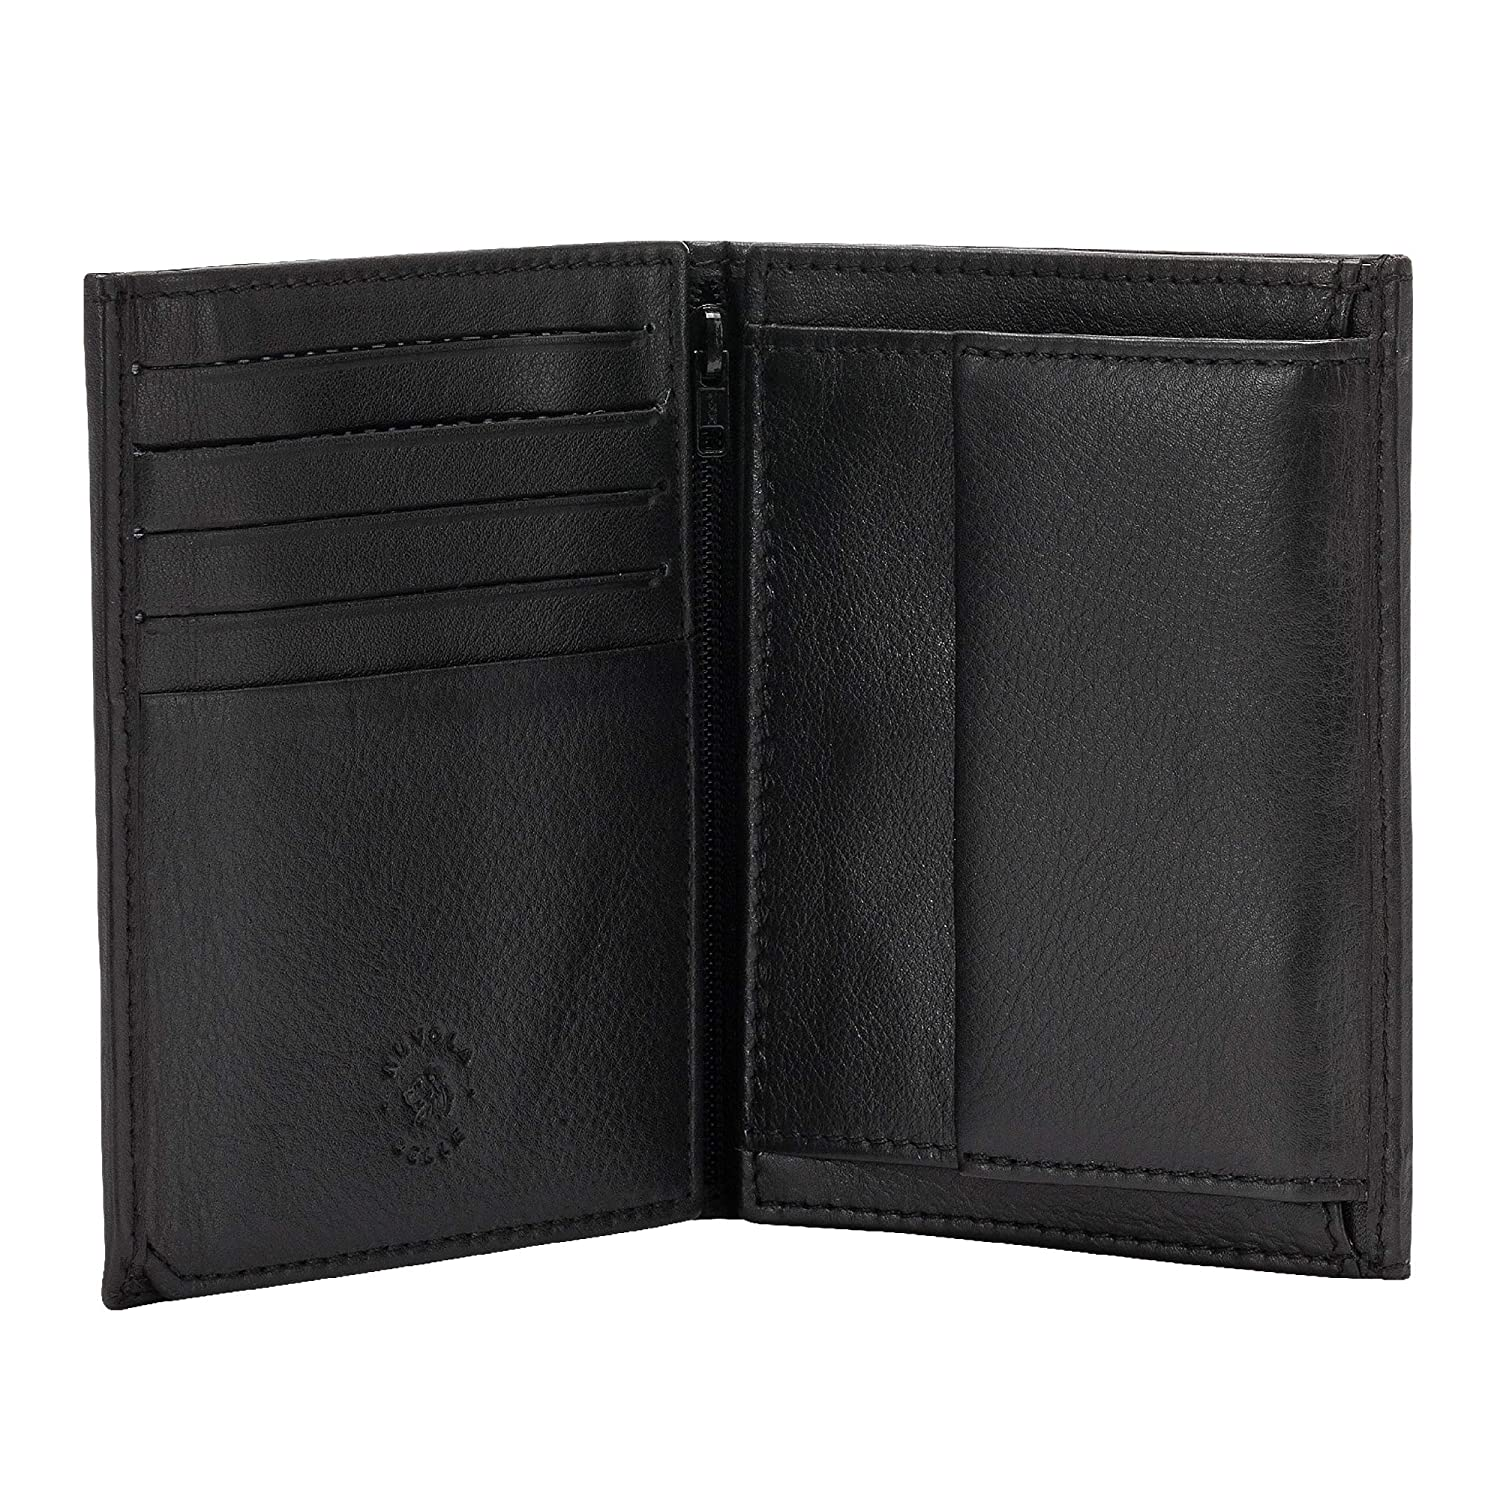 Nuvola Pelle Large Mens Wallet in Real Leather Vertical Bifold Wallet with Coin Pocket and Inner Zip Black